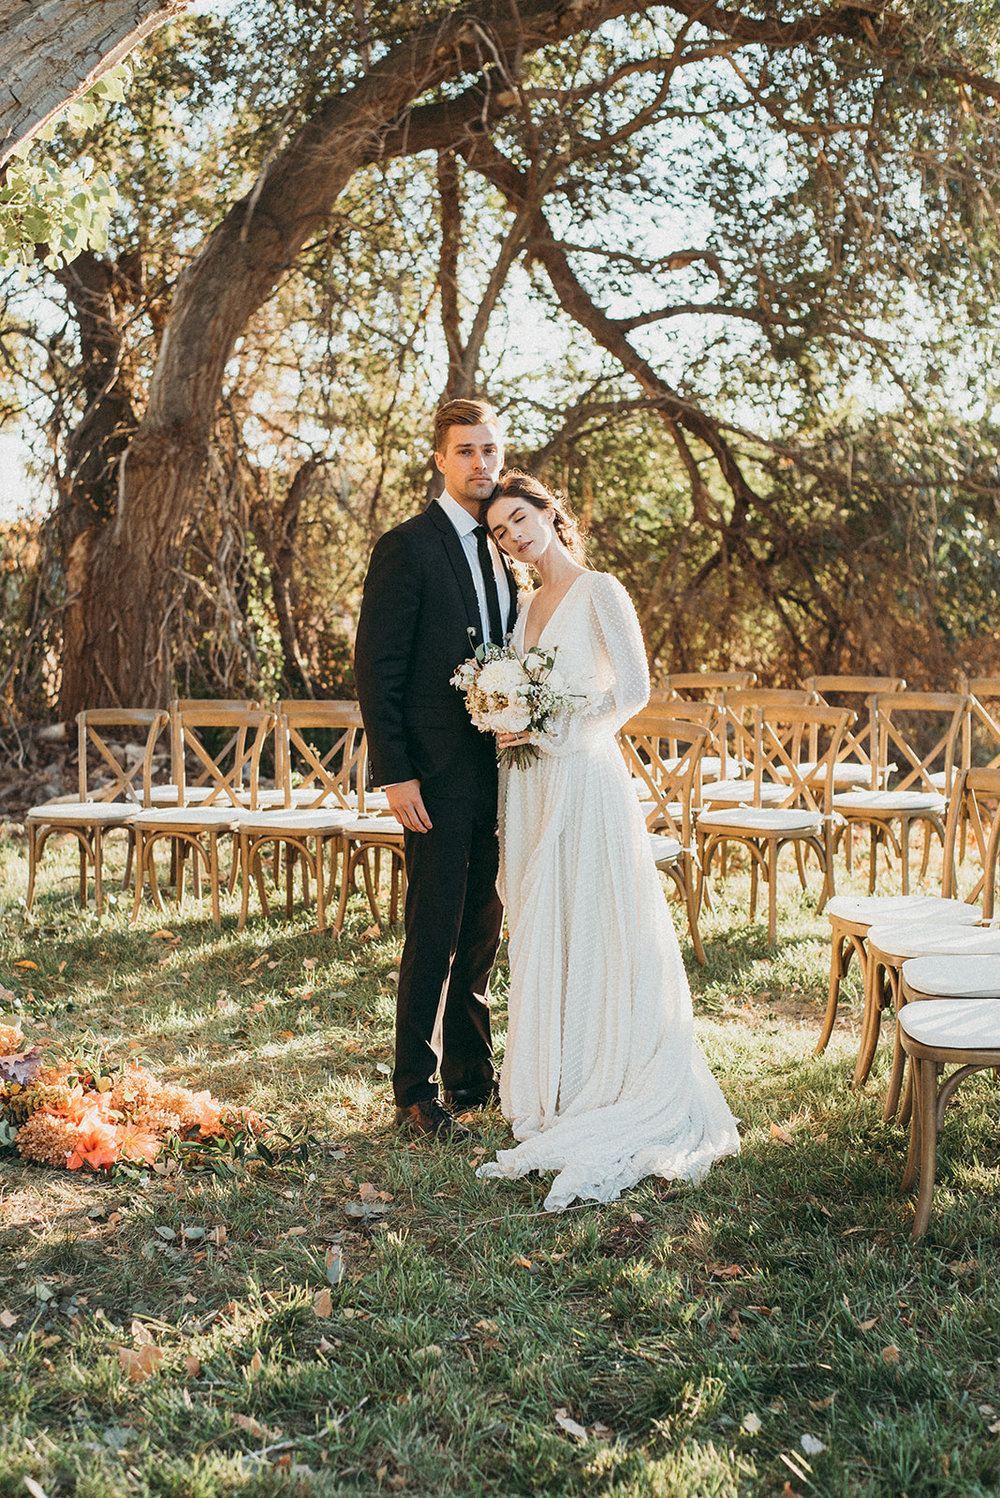 Ira and Lucy, Wedding Planner, Rocky Mountain Bride, The Mitchell Photo Collection